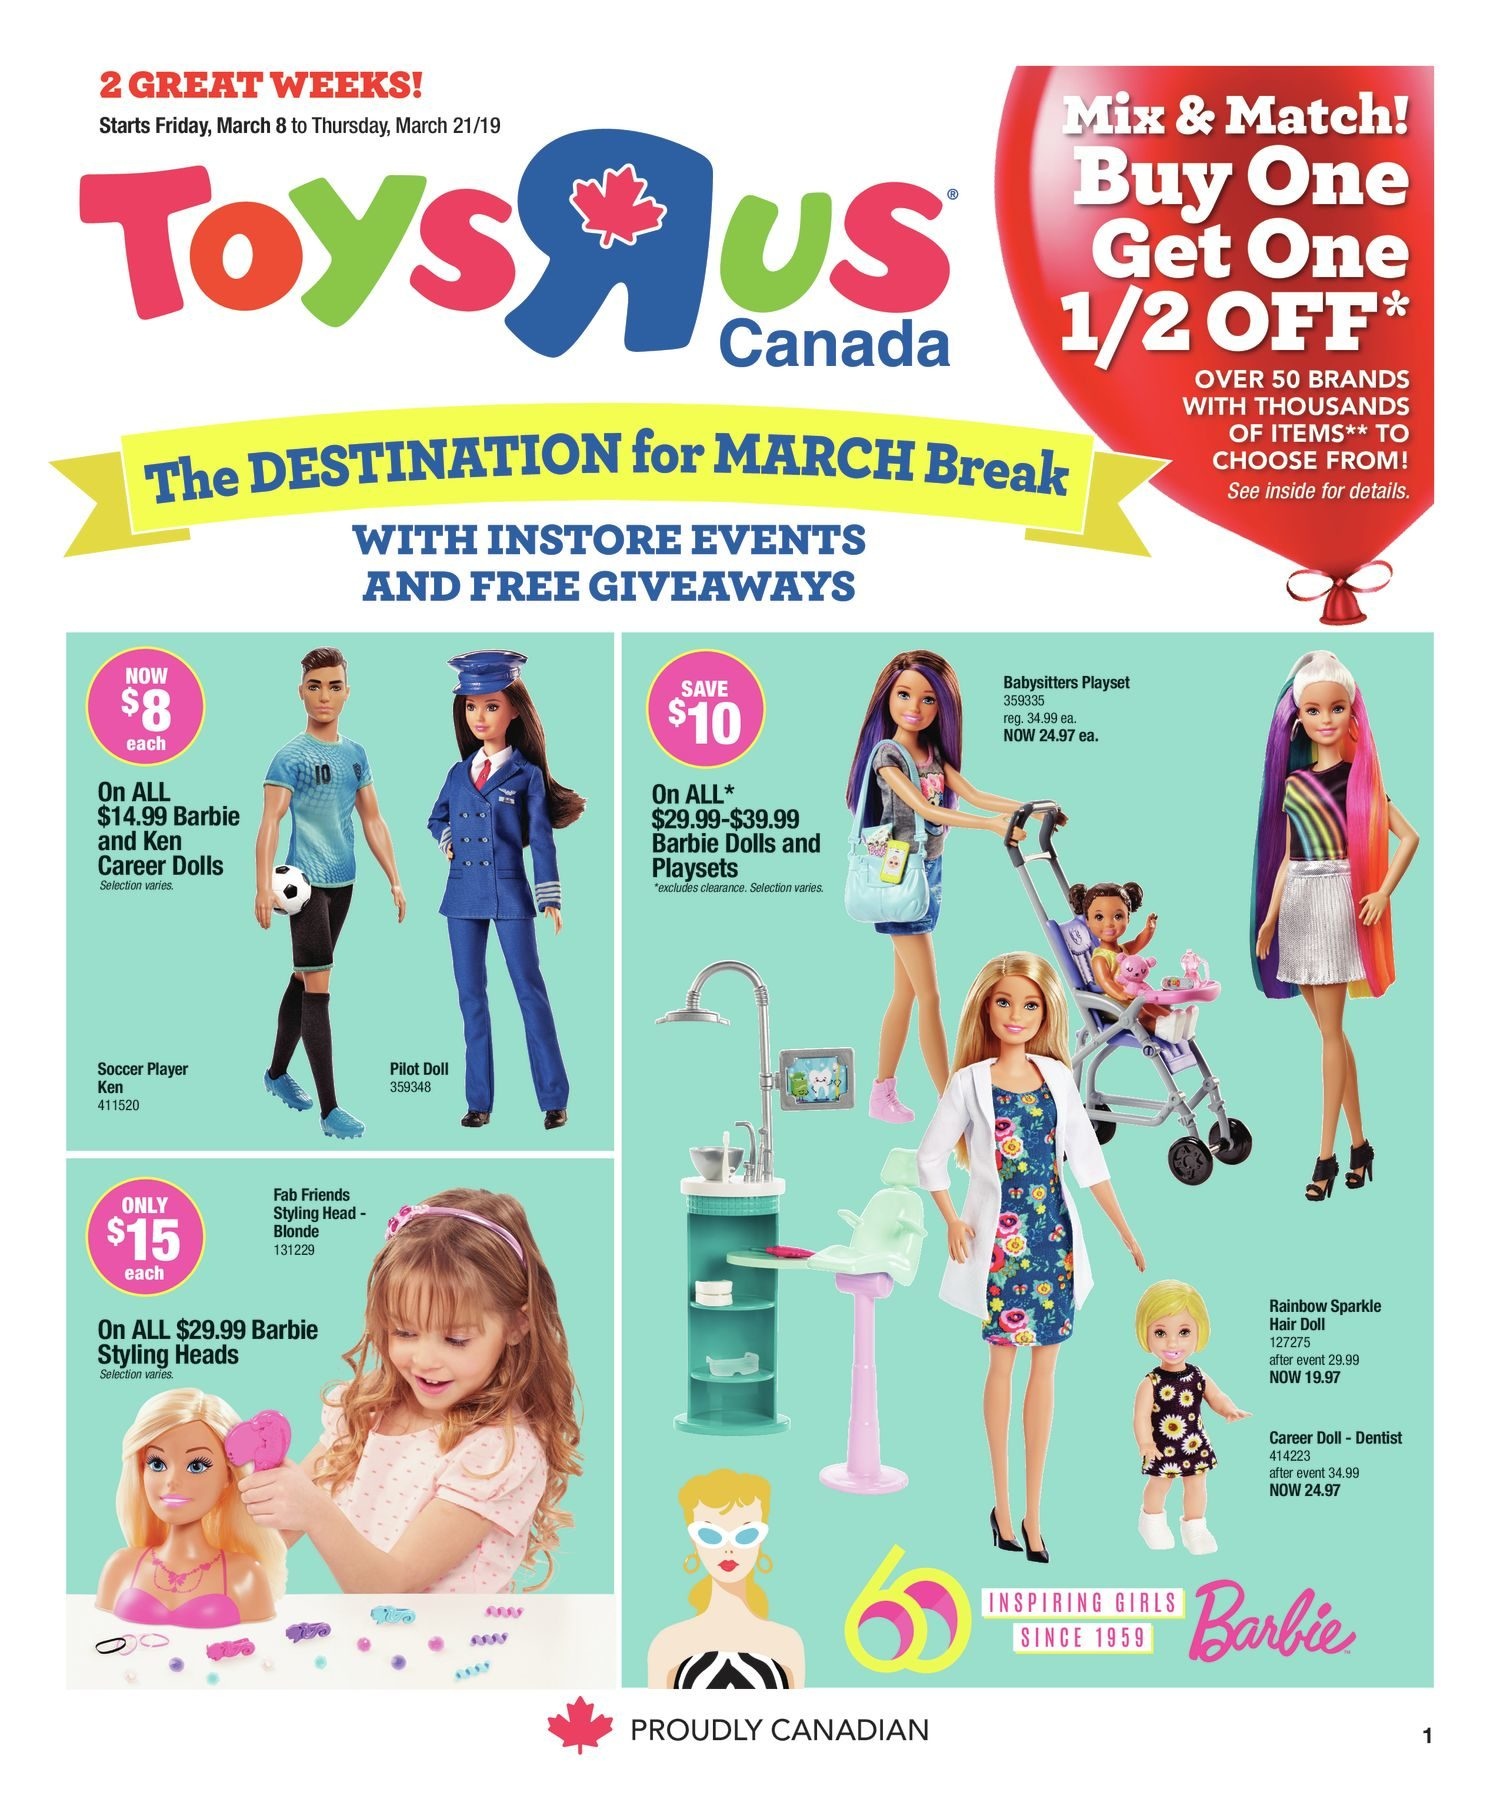 a6f9e7faac05 Toys R Us Weekly Flyer - 2 Great Weeks! - Mar 8 – 21 - RedFlagDeals.com